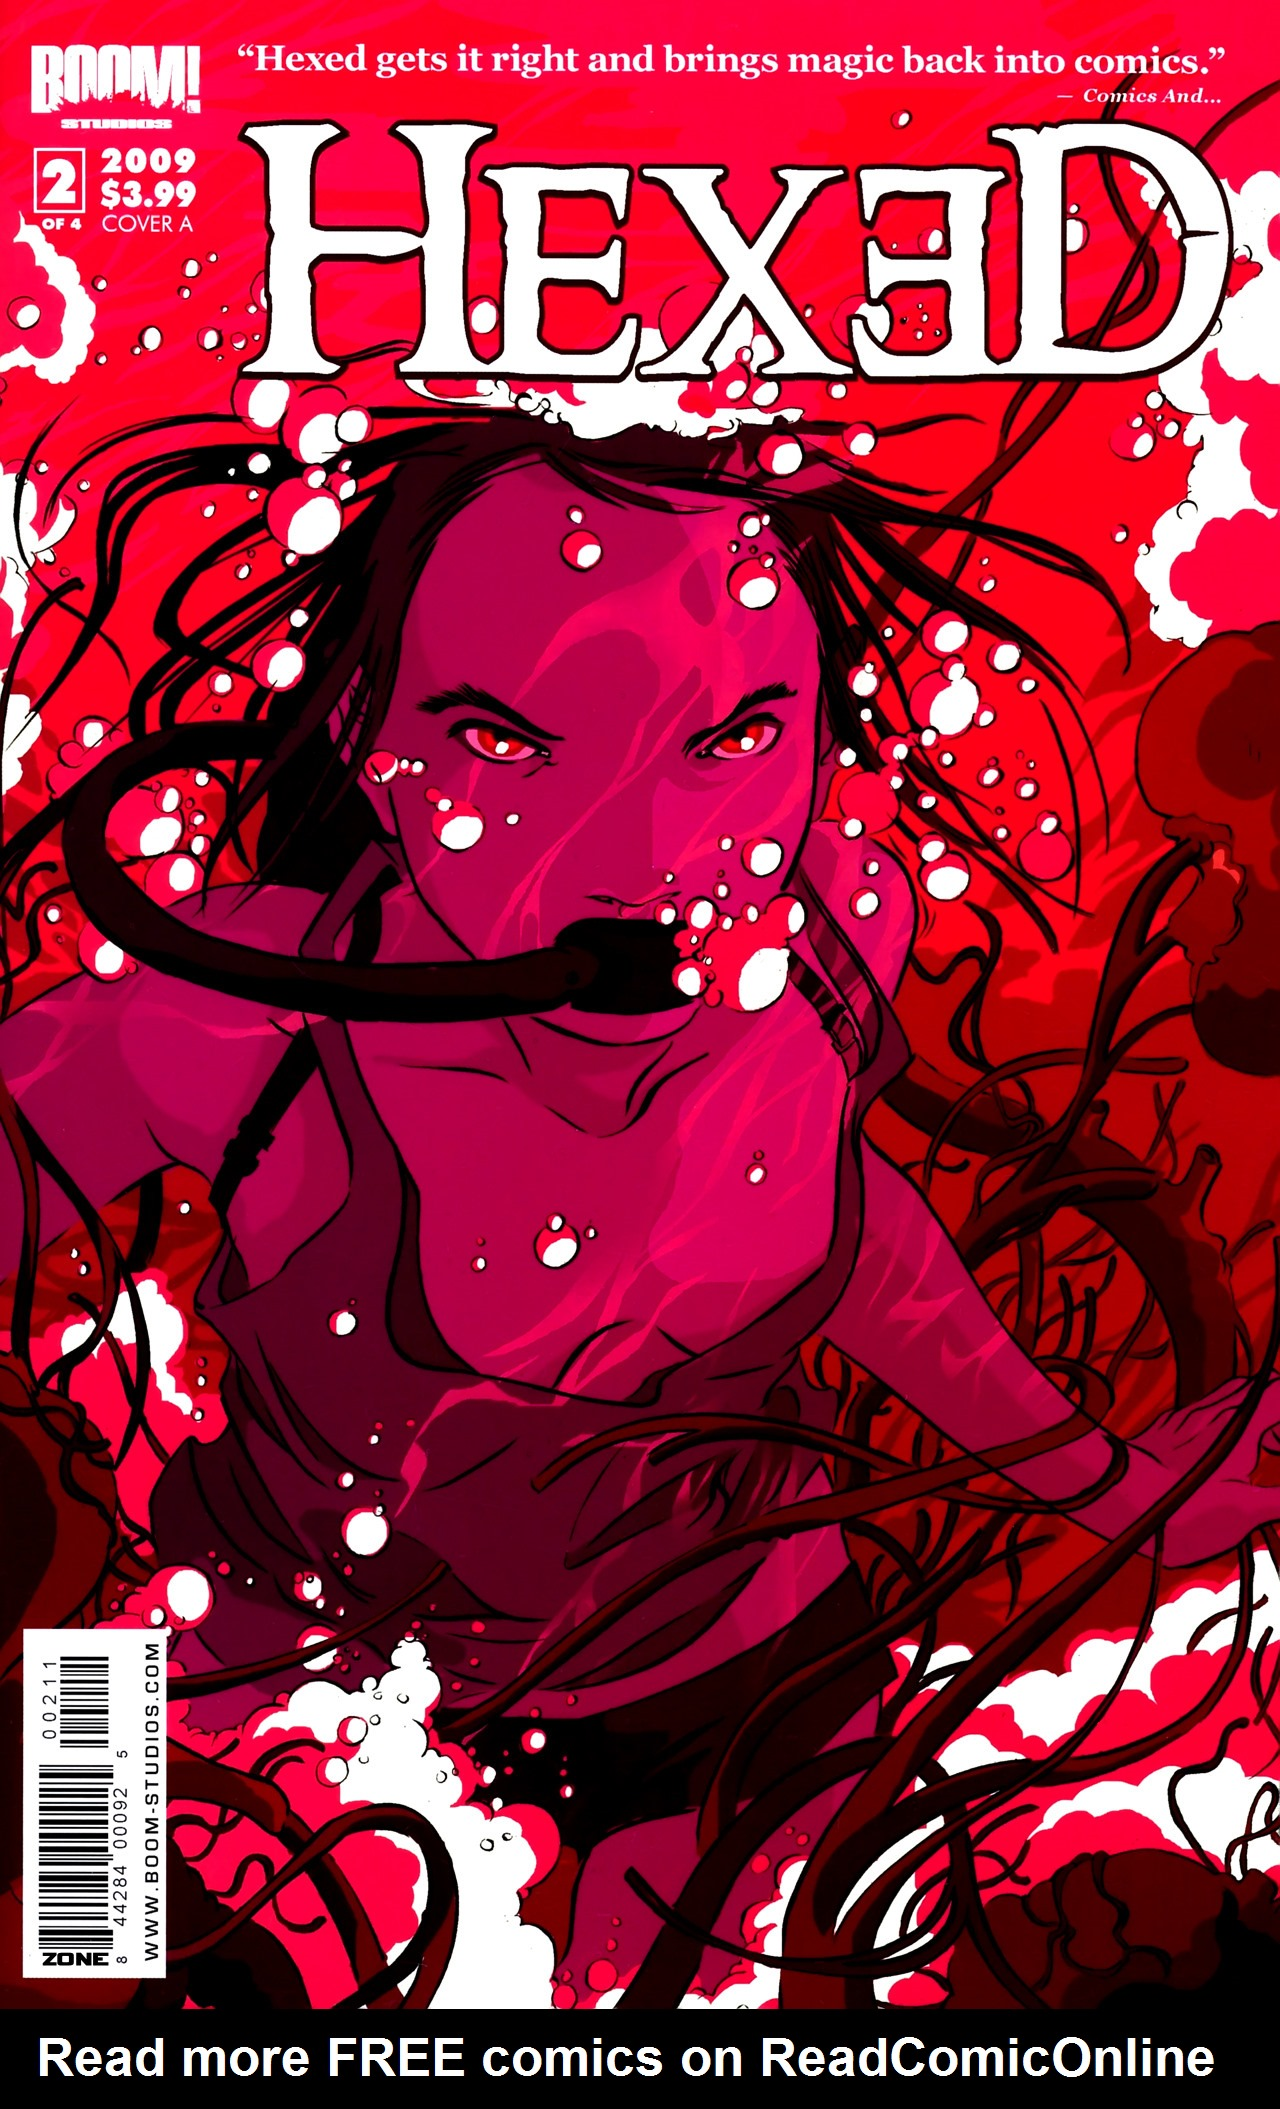 Read online Hexed comic -  Issue #2 - 1